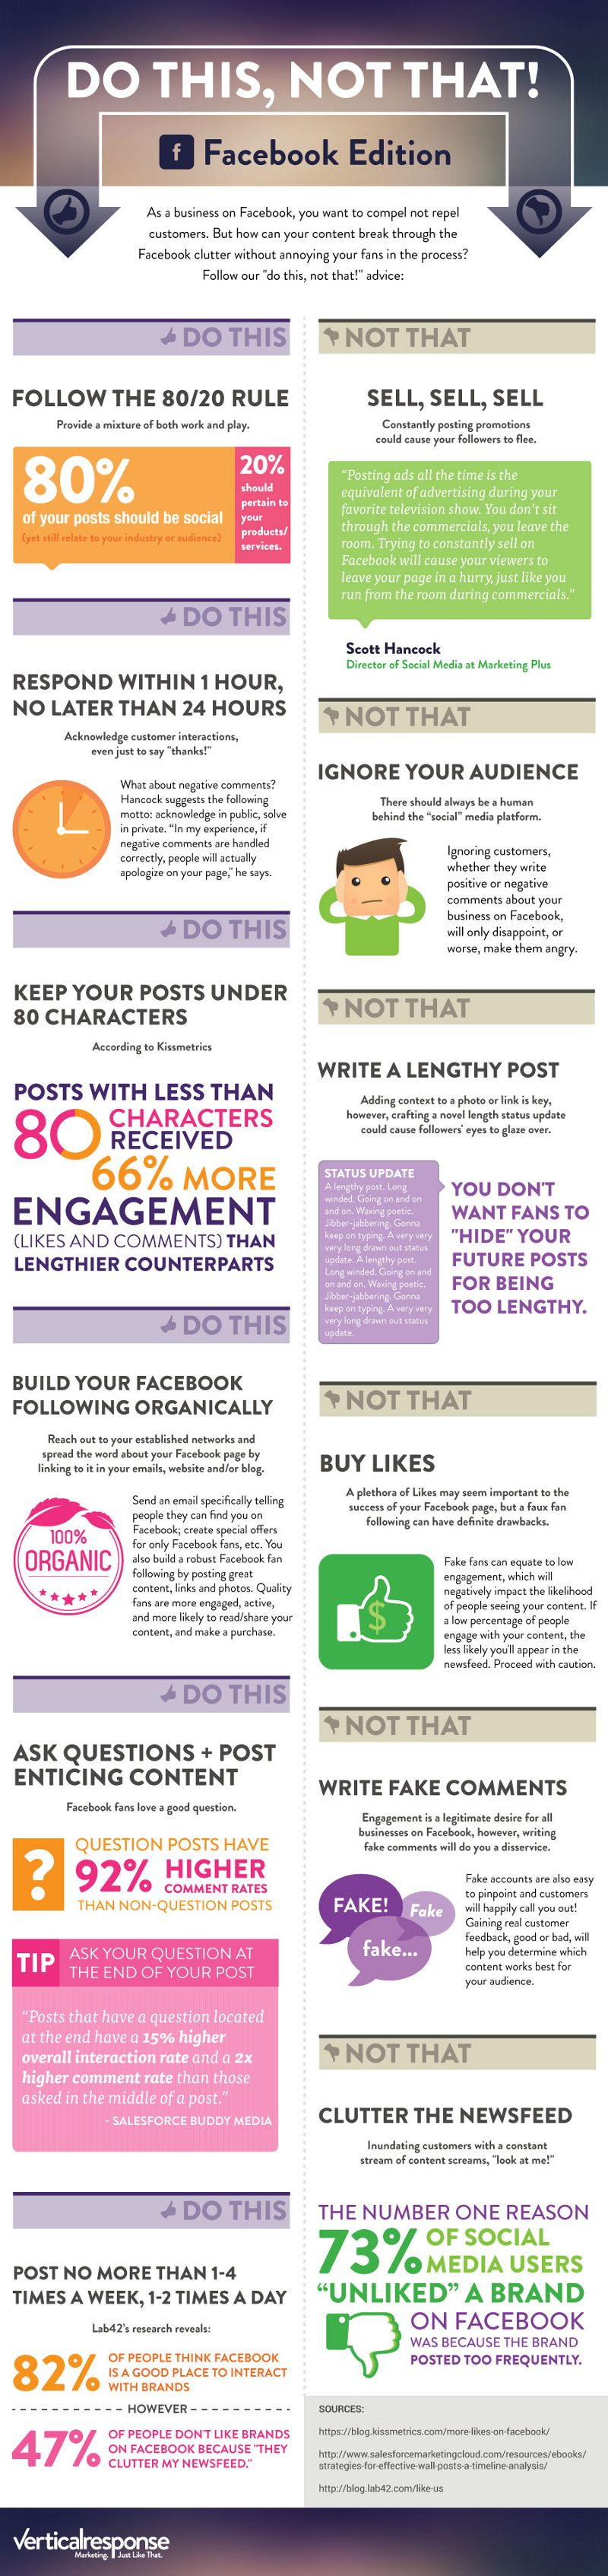 Do ask questions. Don't write fake comments. 12 Dos and Donts of #Facebook Page Management #socialmedia #marketing